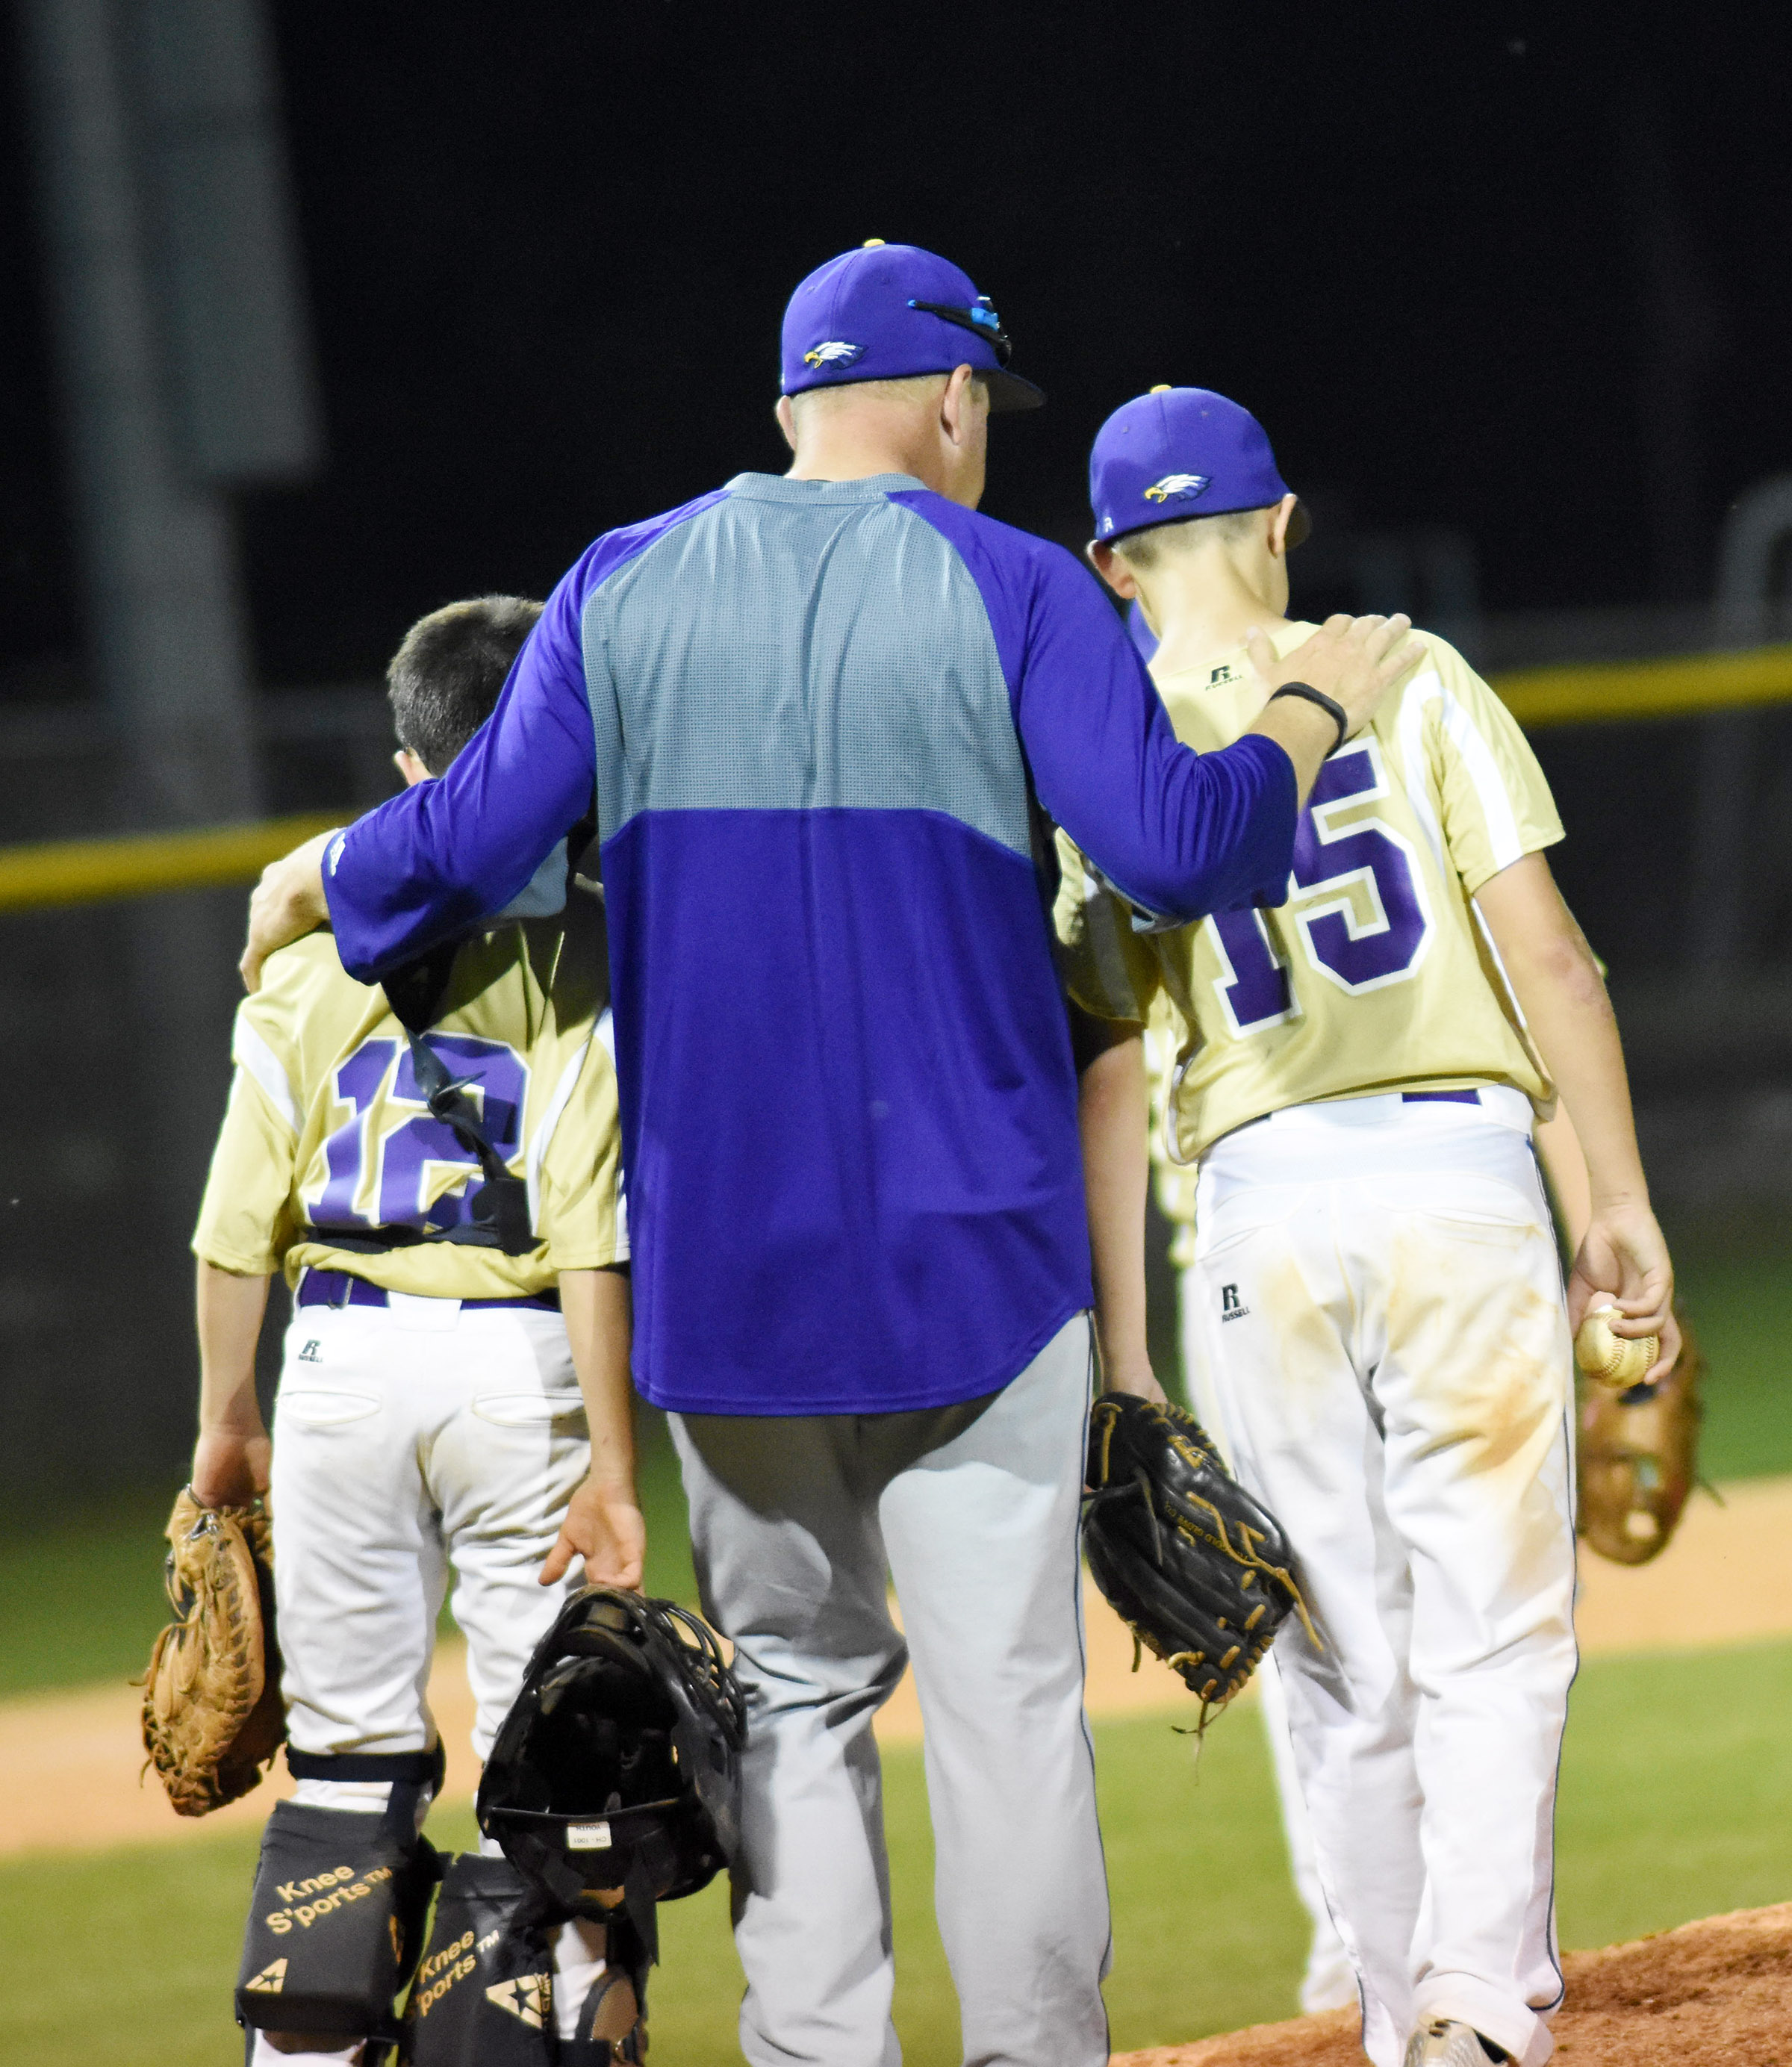 CMS baseball assistant coach Bradley Bates talks to catcher Chase Hord, a seventh-grader, at left, and pitcher Kaden Bloyd, a sixth-grader.